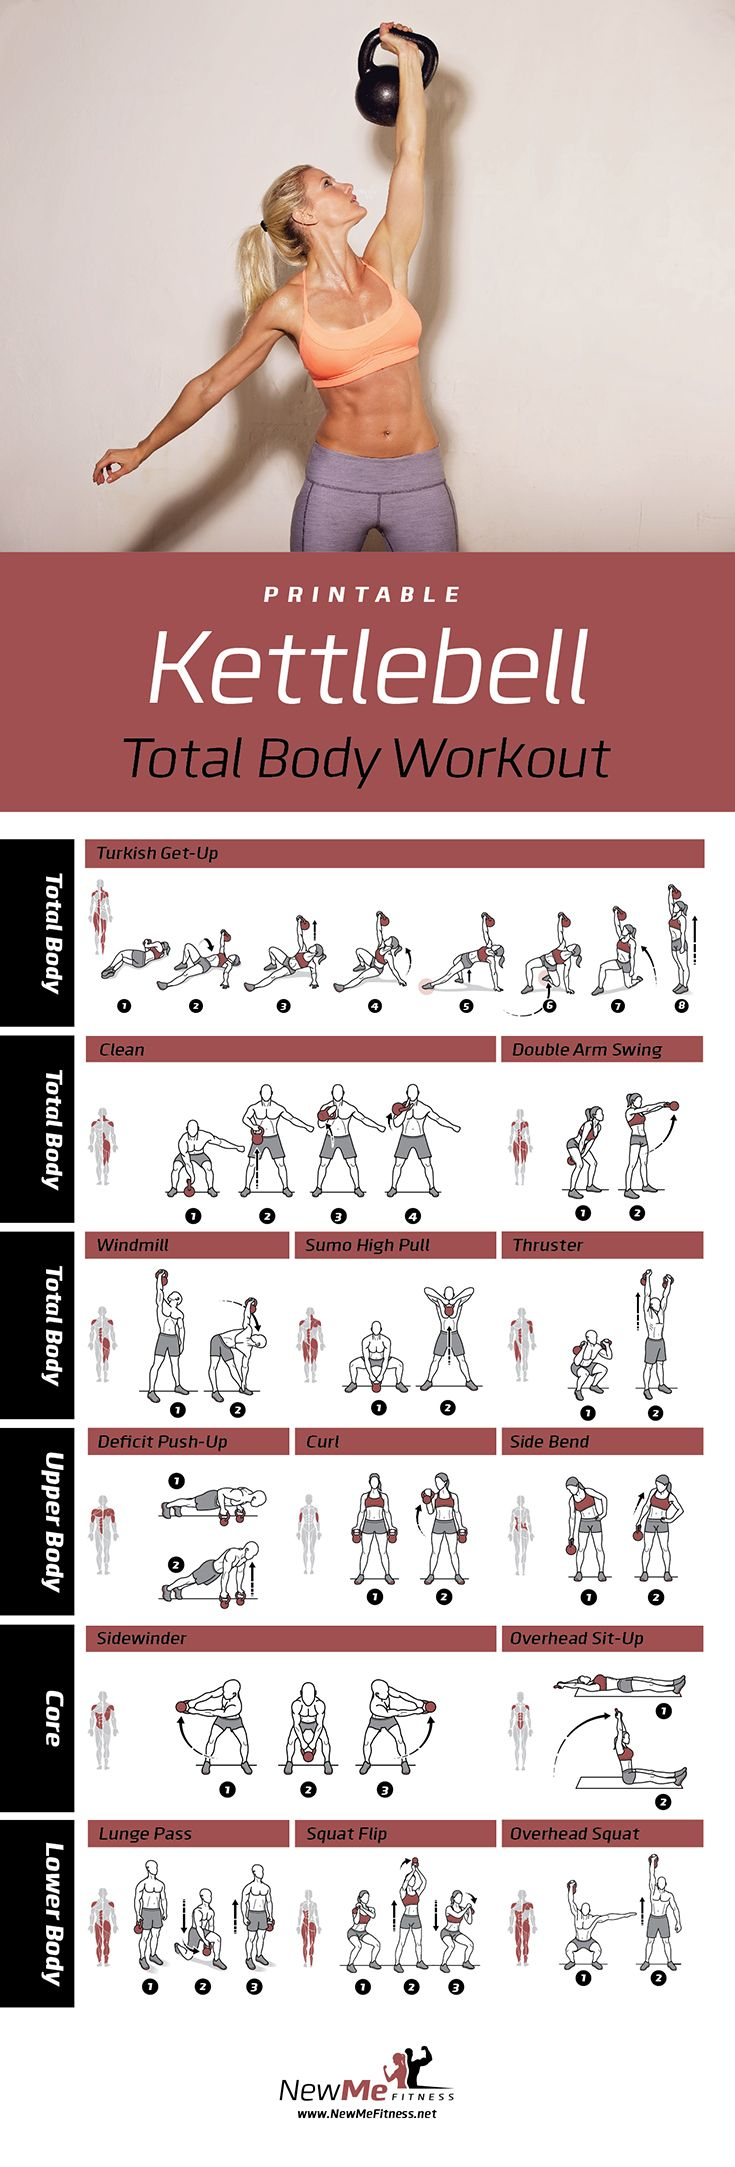 Best All-around Kettlebell Workout Out there. Get Stronger, Lose Weight & Feel like a Superhuman!